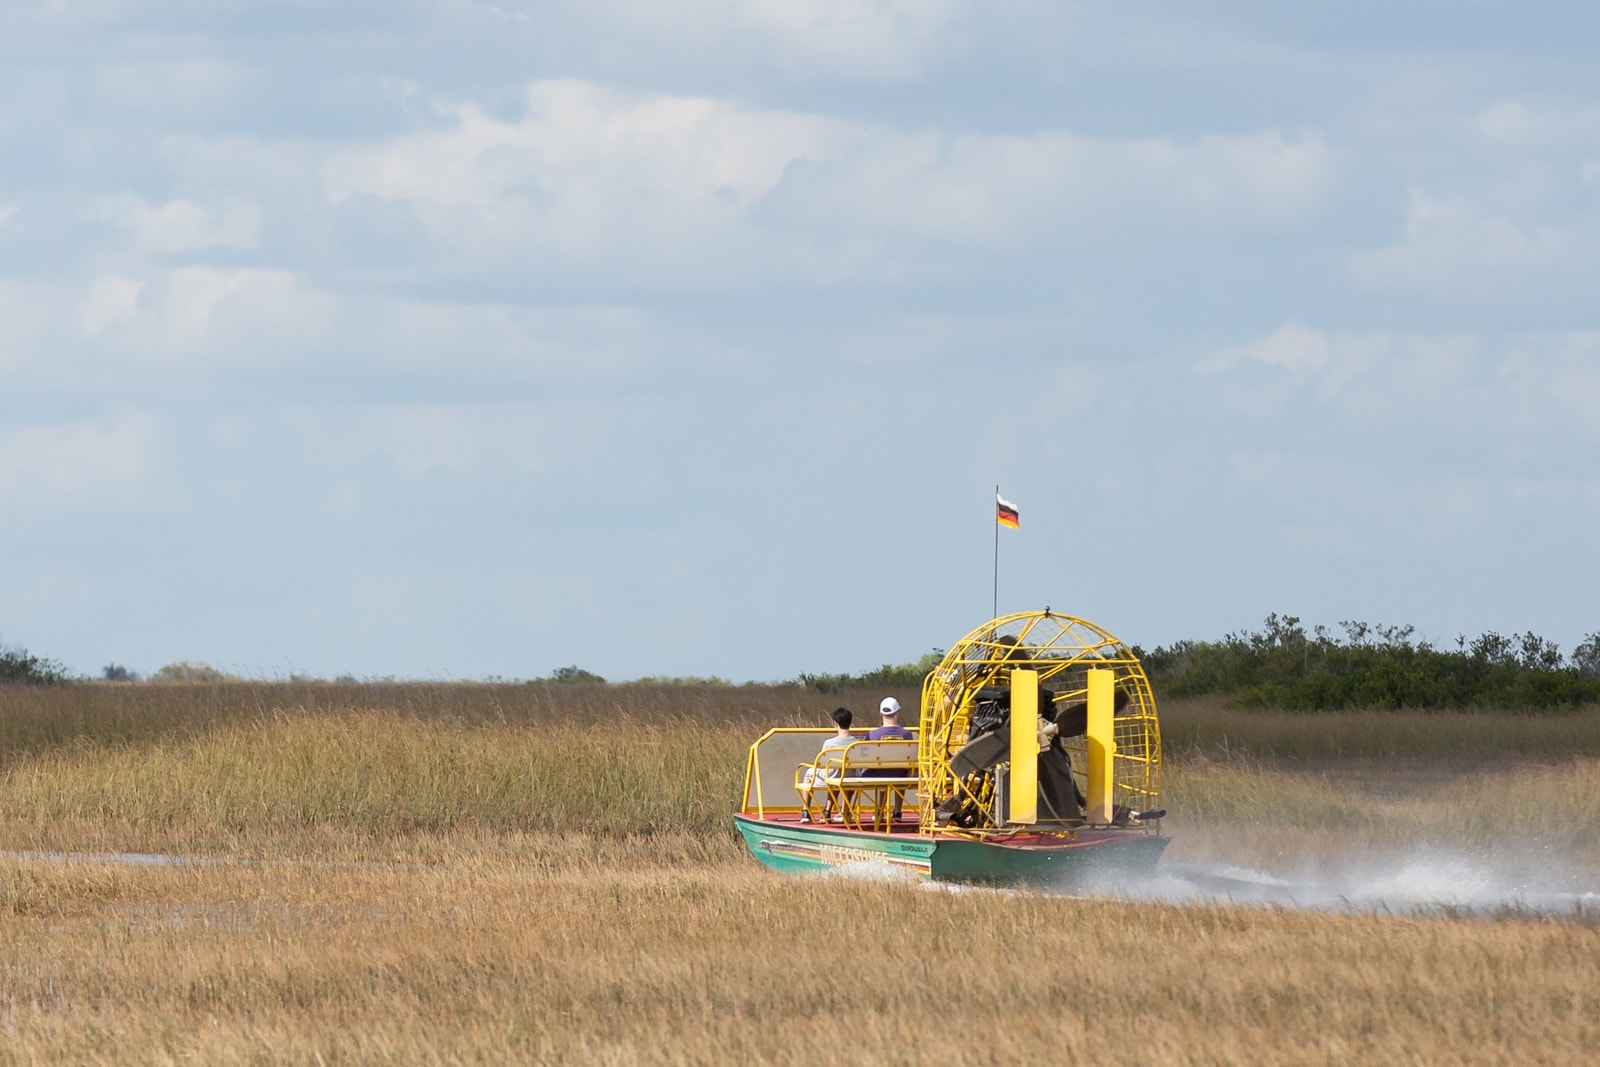 Airboat tour in the Florida Everglades